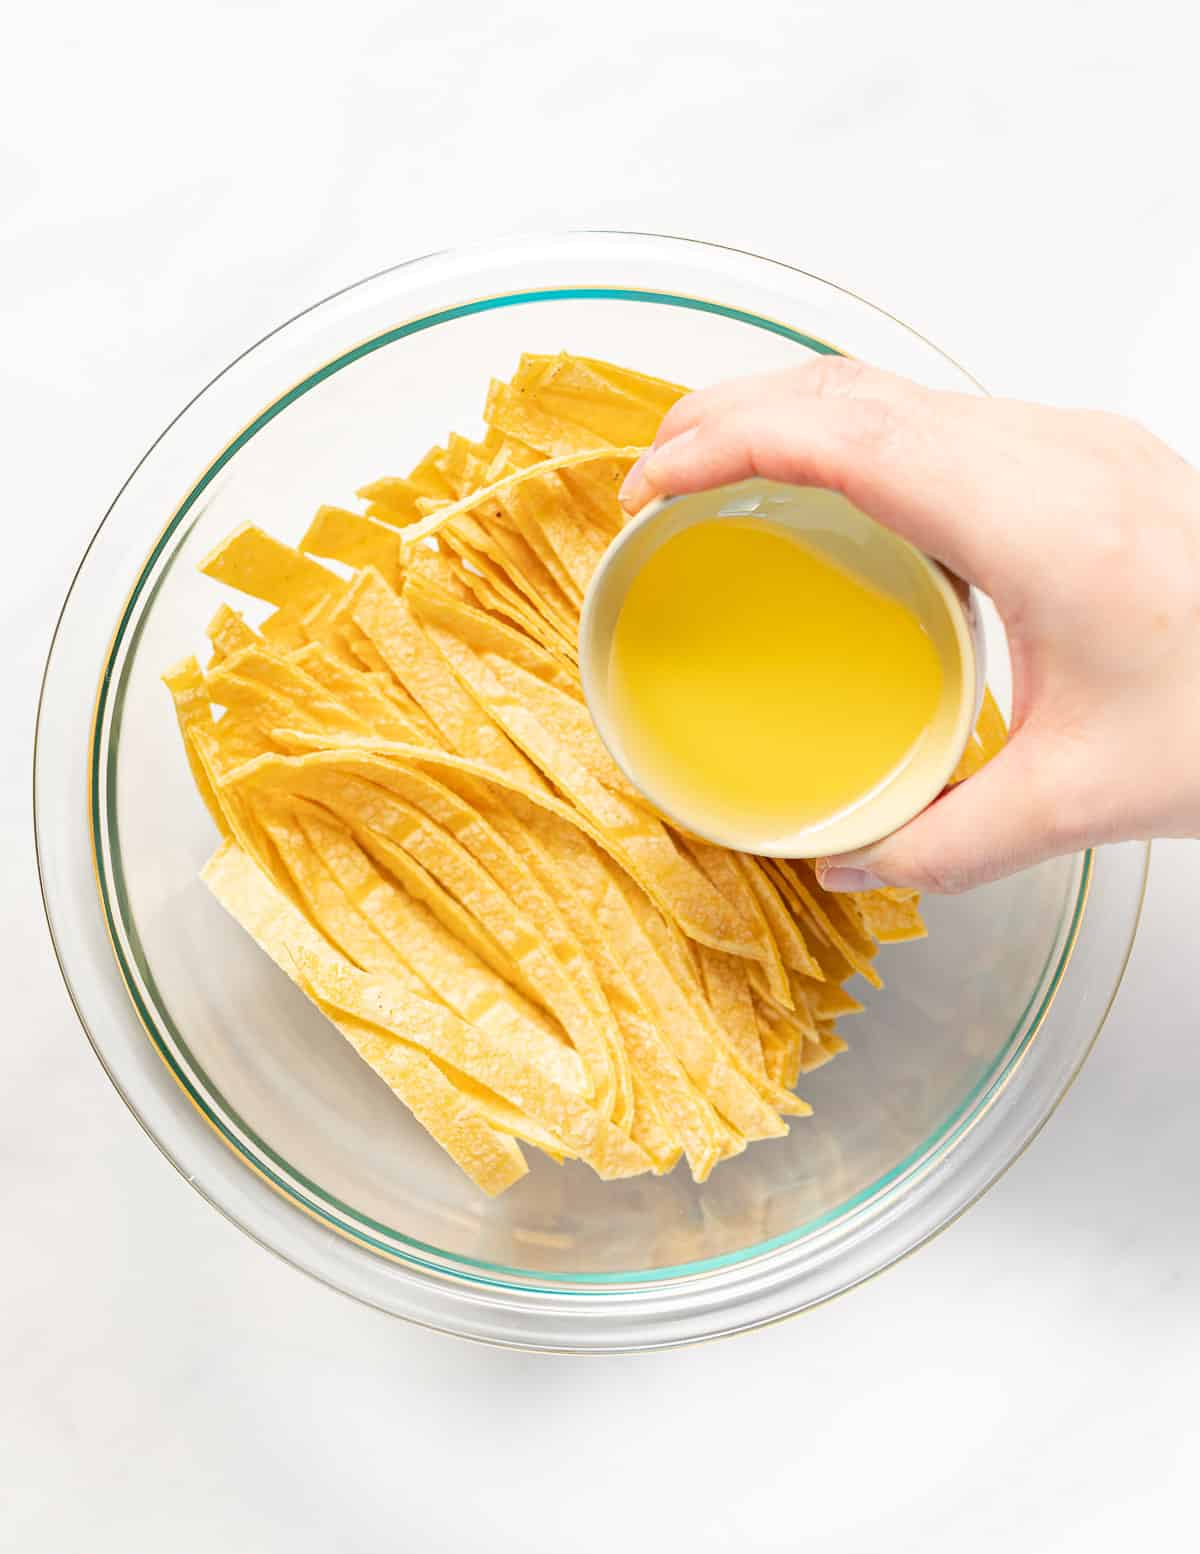 oil being poured over tortilla strips in a bowl